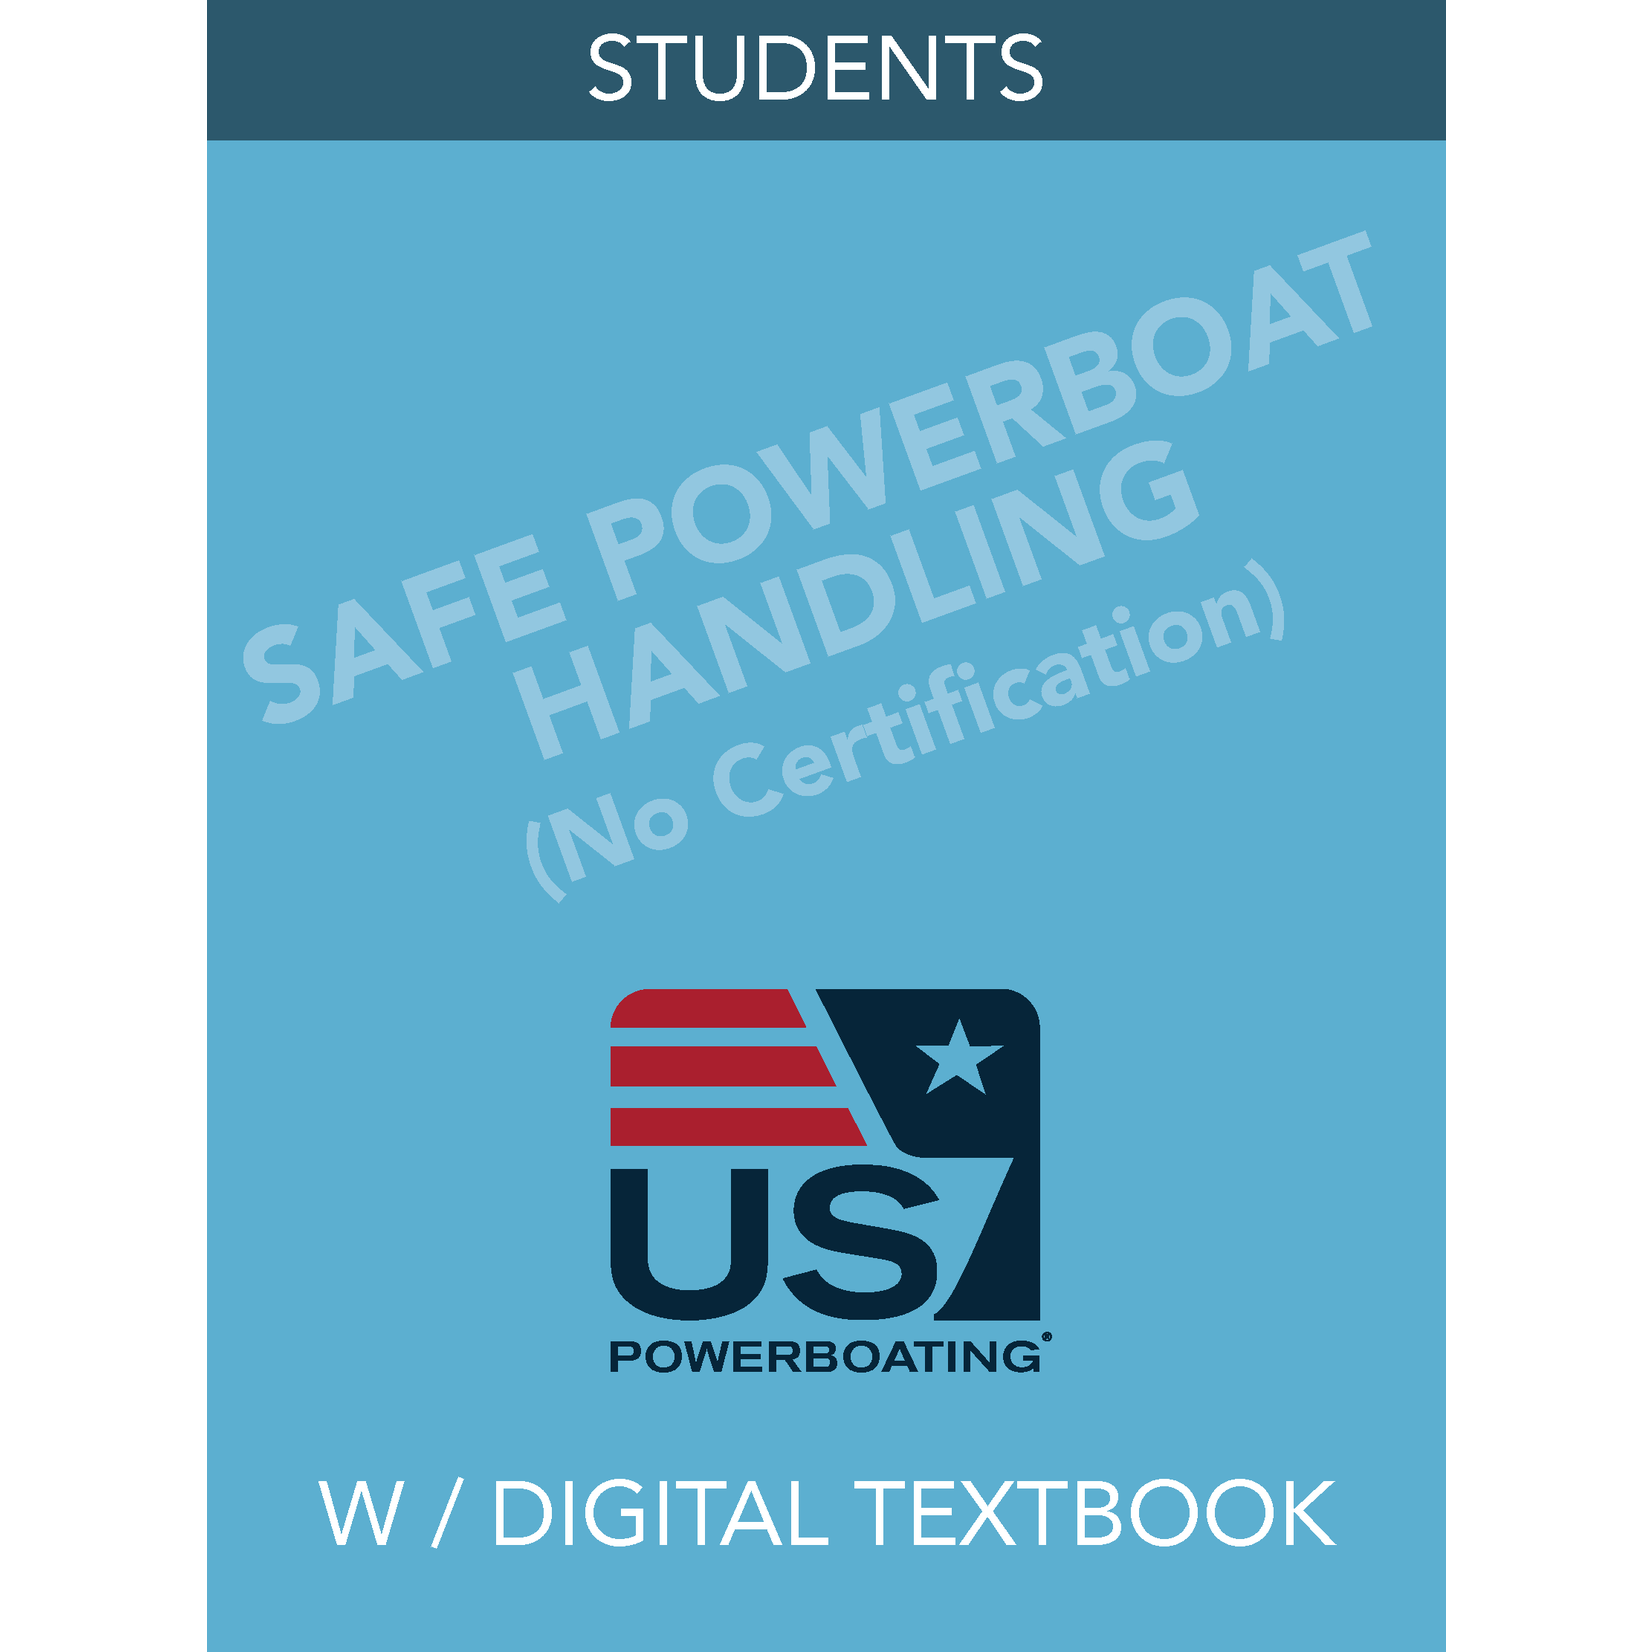 Safe Powerboat Handling- Students (No Certification) - with Digital Textbook